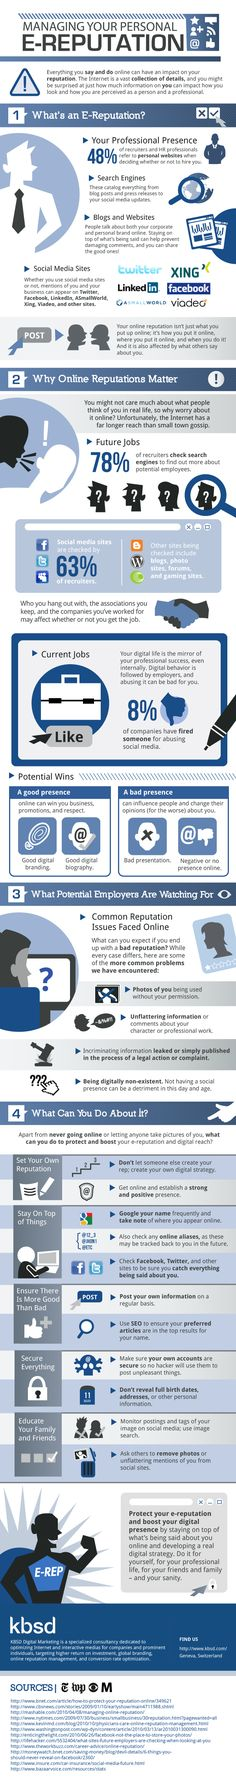 """You don't have to be running for president to care about your online reputation. Almost everything you do online is easy to track, especially when you're using social media sites. This infographic shows you how to manage your """"e-reputation,""""Internet Inbound Marketing, Marketing Trends, Marketing Digital, Content Marketing, Internet Marketing, Social Media Marketing, Facebook Marketing, Marketing Strategies, Marketing Branding"""